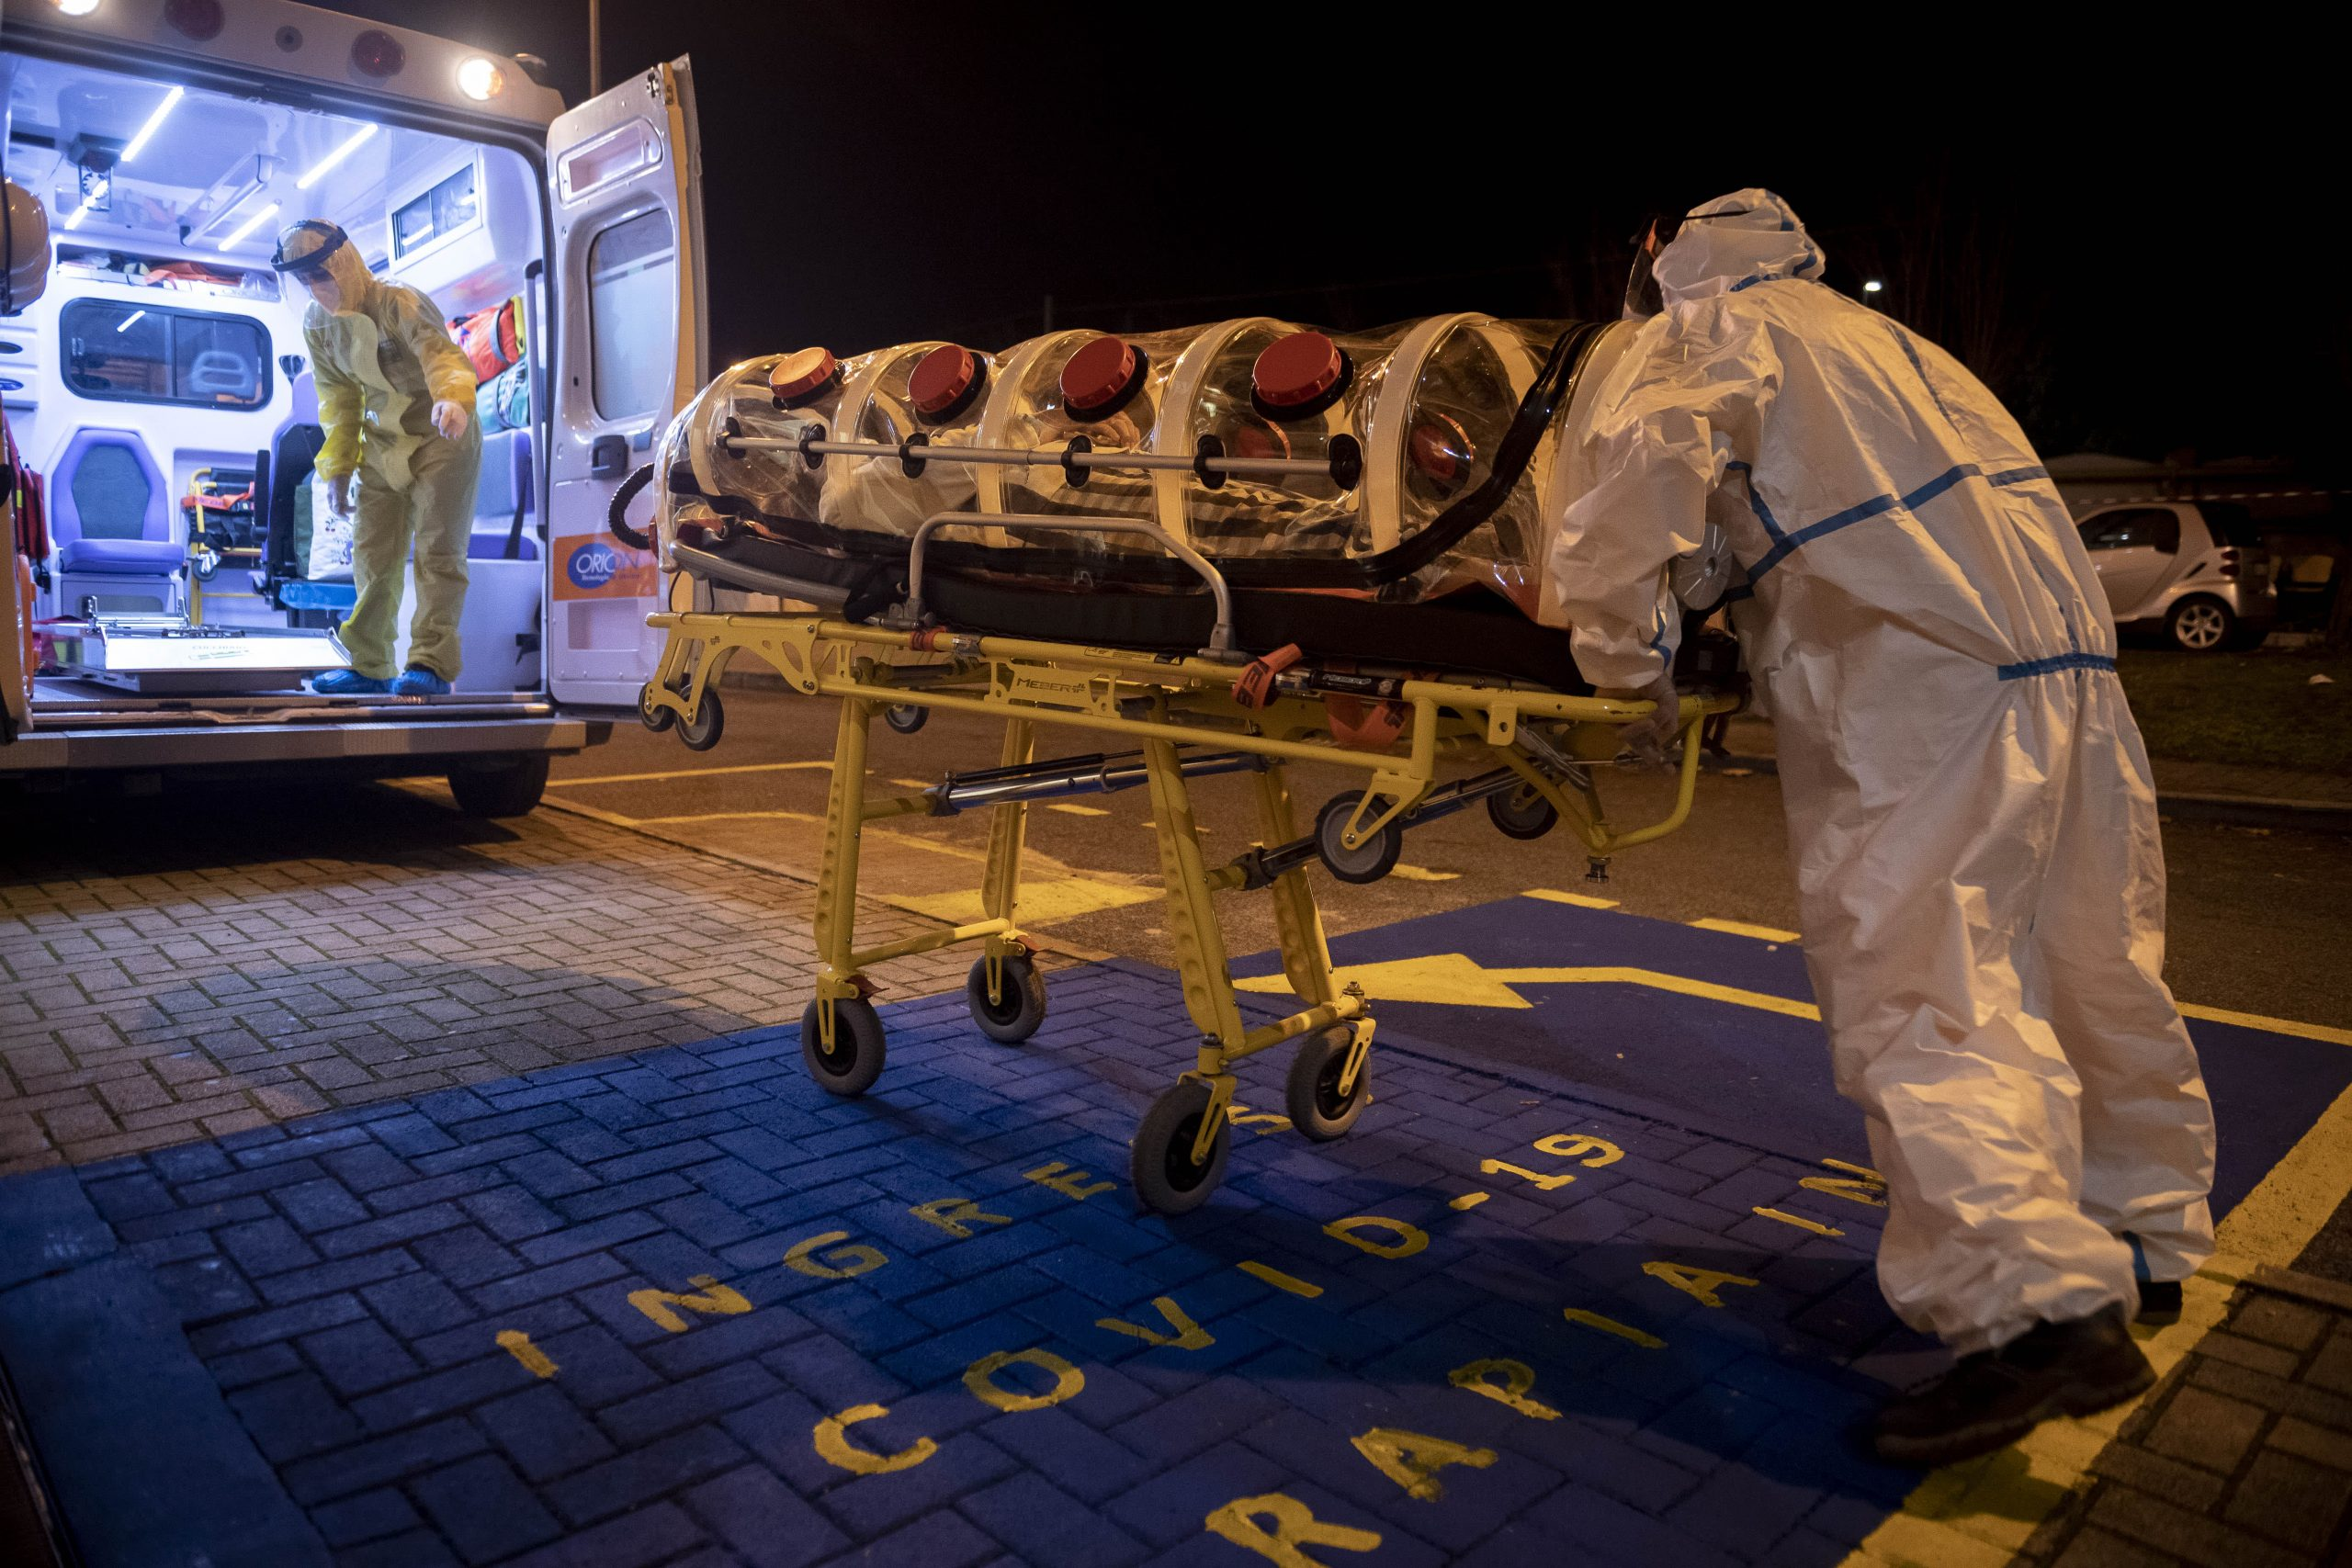 italy-coronavirus-outbreak-whats-occurring-there-now